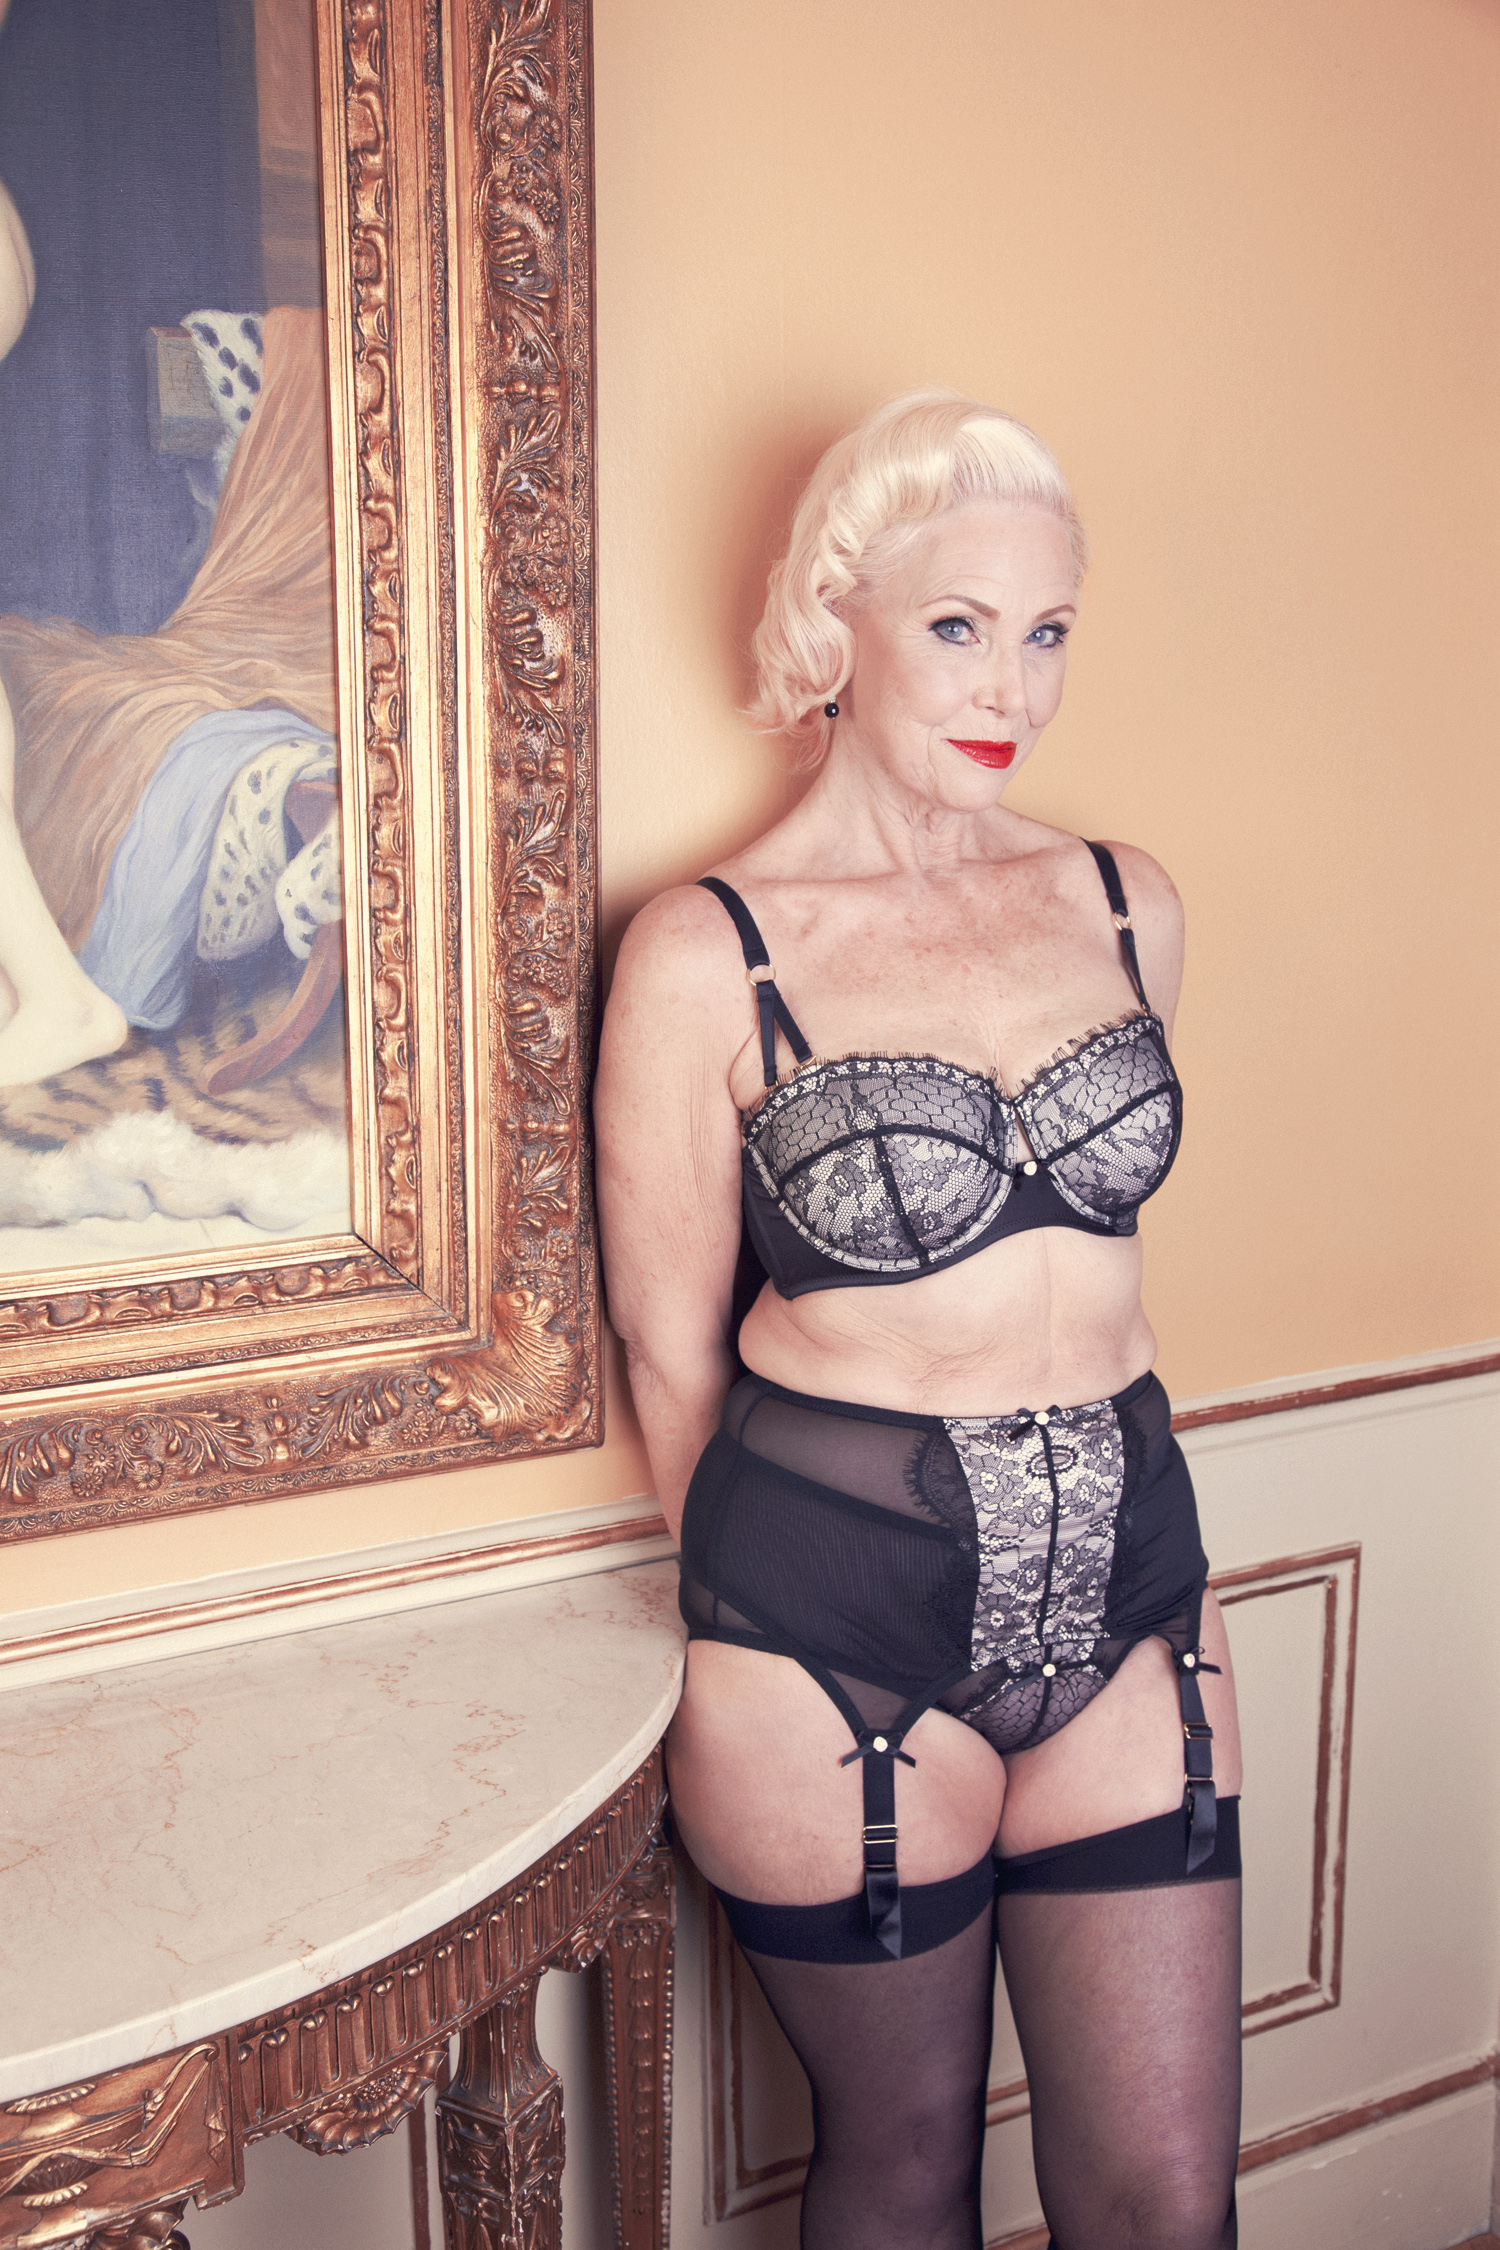 Playful Promises' Ageless Fashion campaign, featuring Lina